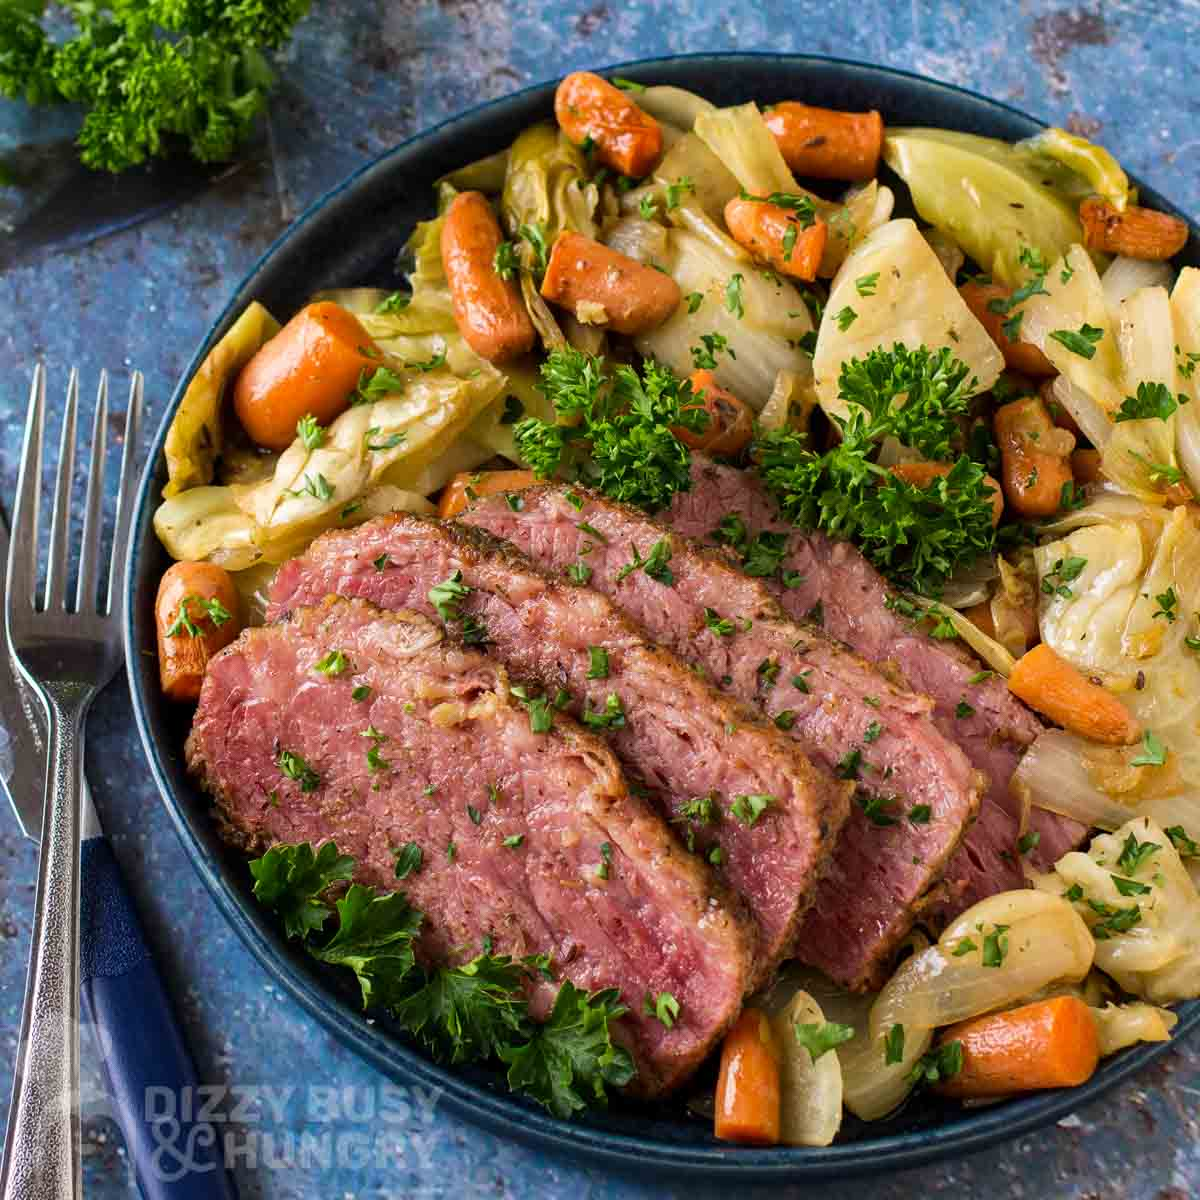 Overhead shot of braised corned beef with vegetables garnished with herbs on a black plate with forks and herbs on the side on a blue cloth.